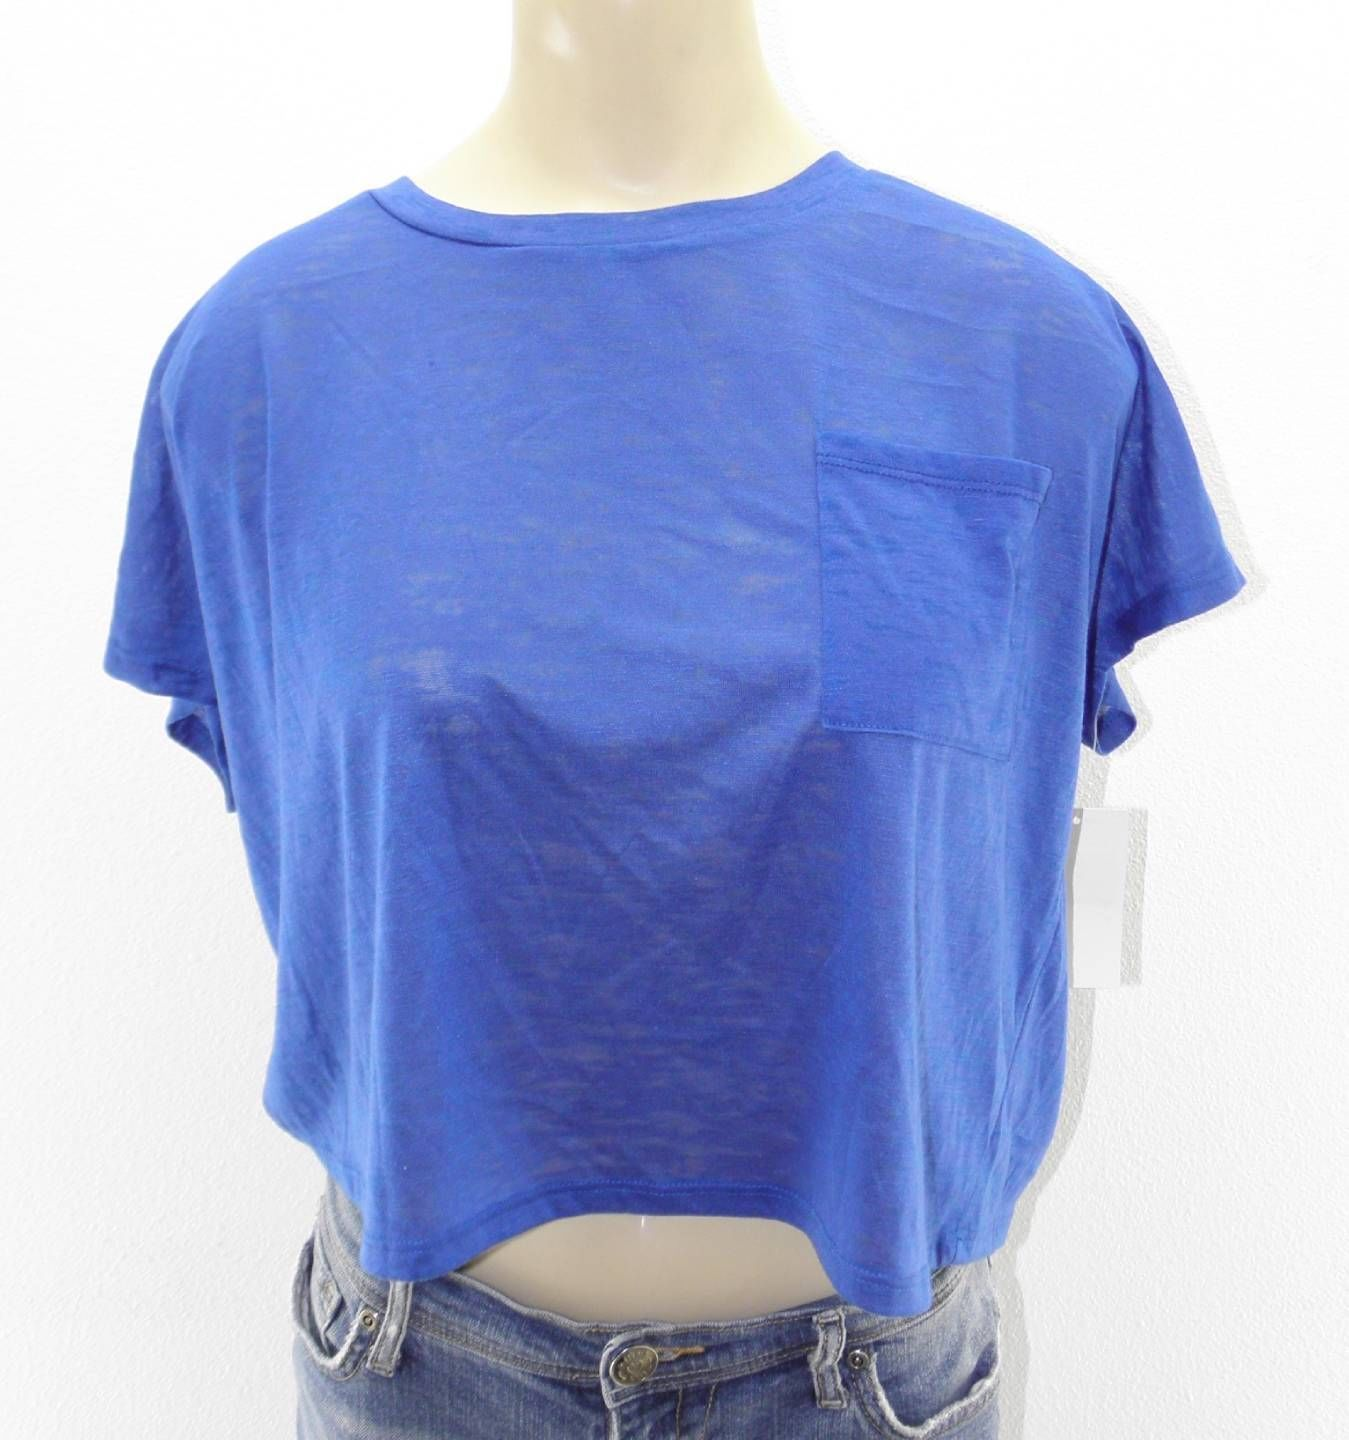 NEW WOMEN'S ABOUND CROP TOP CROPPED T TEE SHIRT BLUE M MEDIUM LOUNGE CASUAL TOP